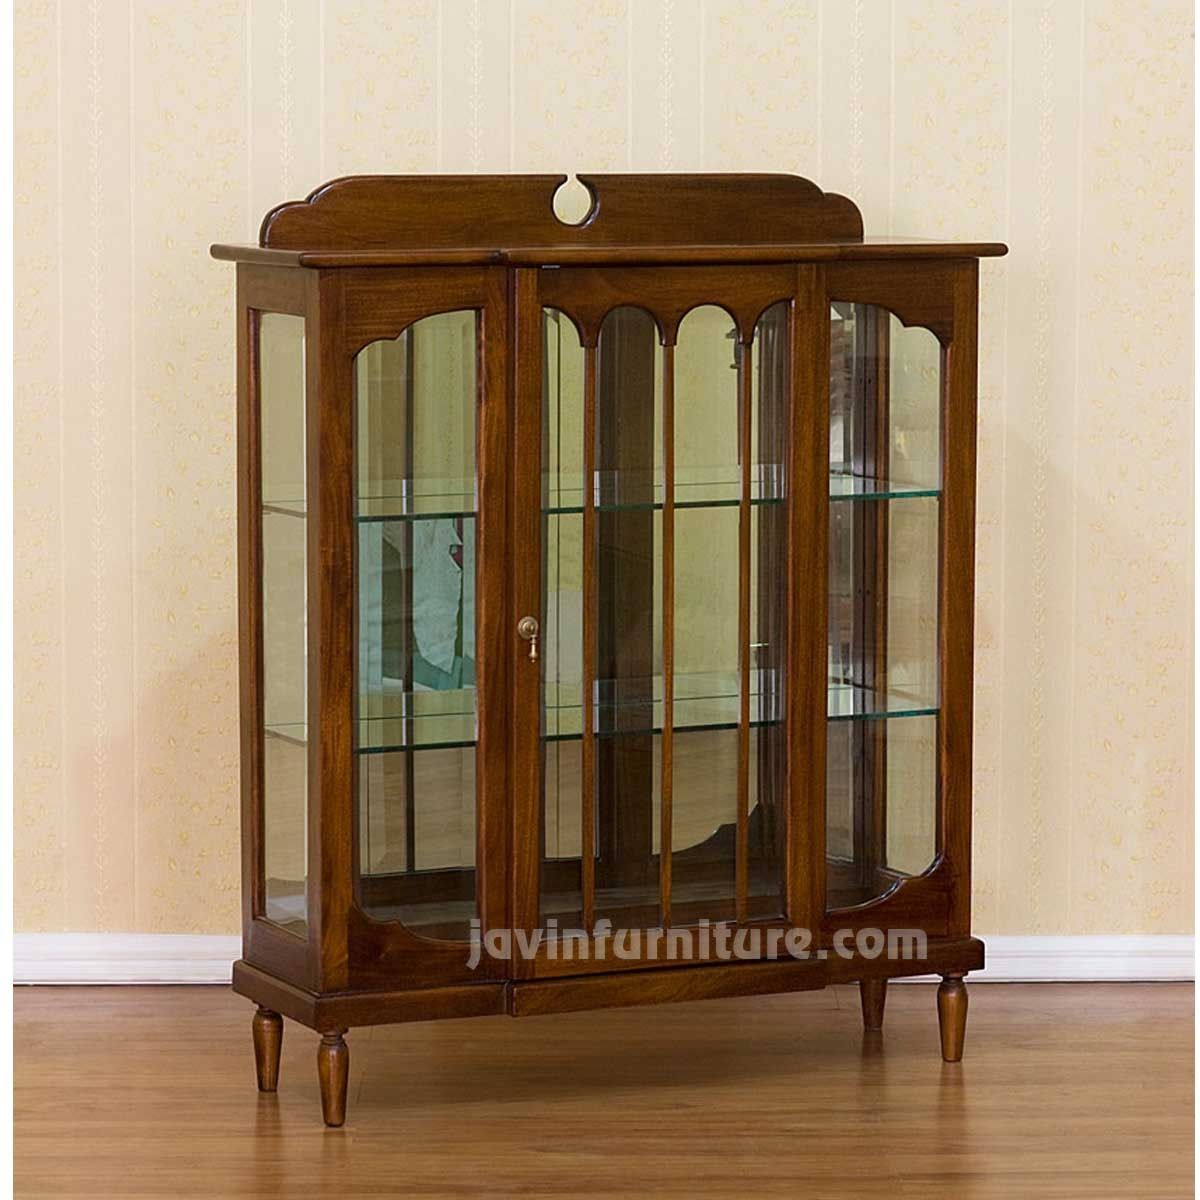 Small Wall Display Cabinets With Glass Doors Httpadvice Tips